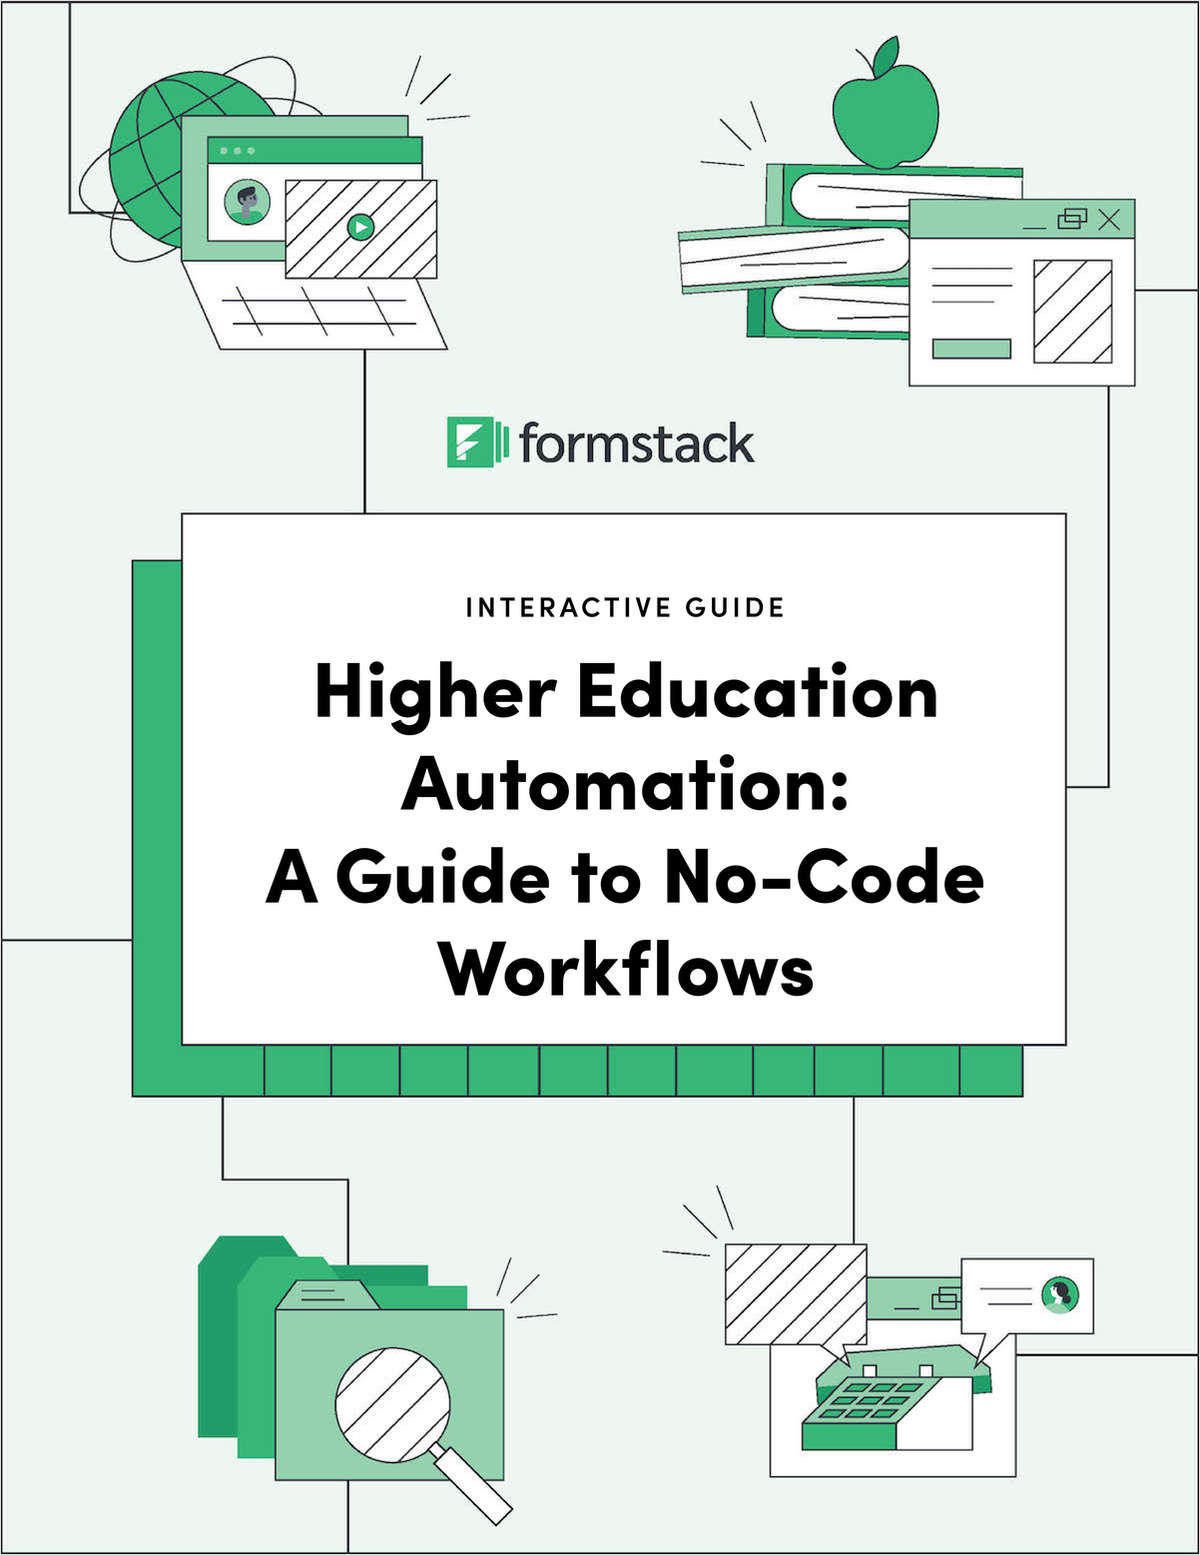 Higher Education Automation: A Guide to No-Code Workflows